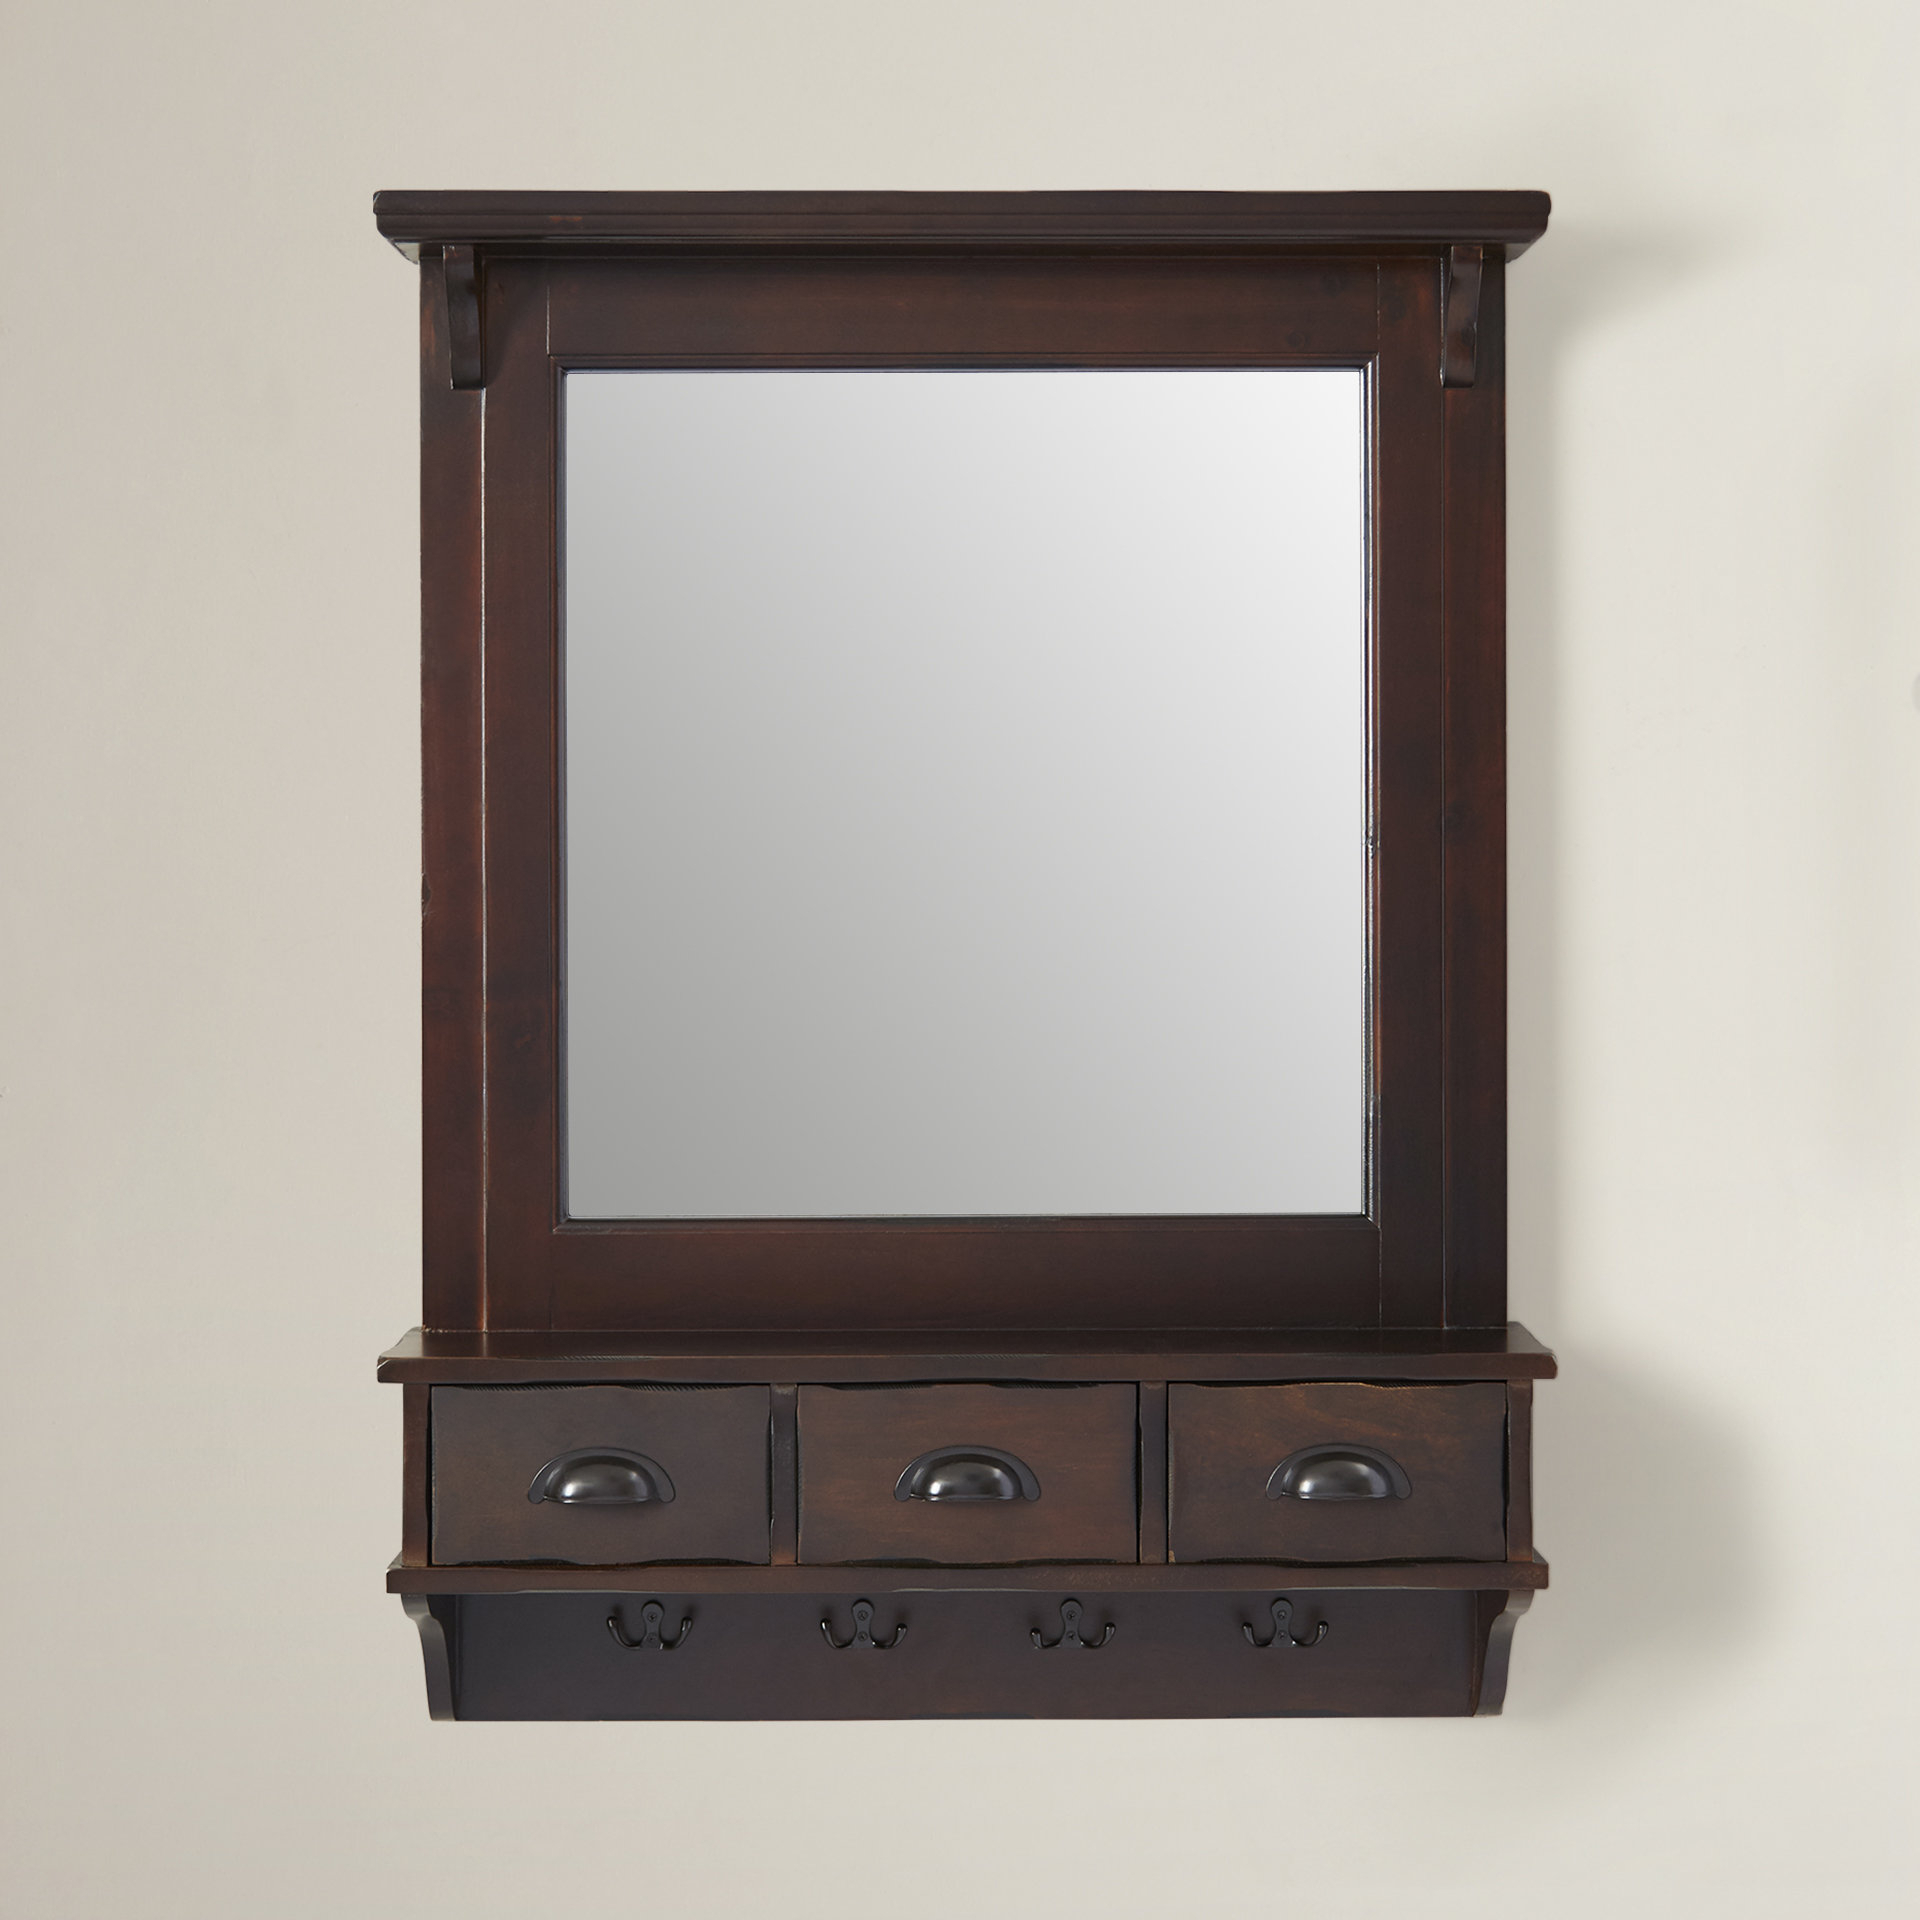 Featured Image of Hallas Wall Organizer Mirrors